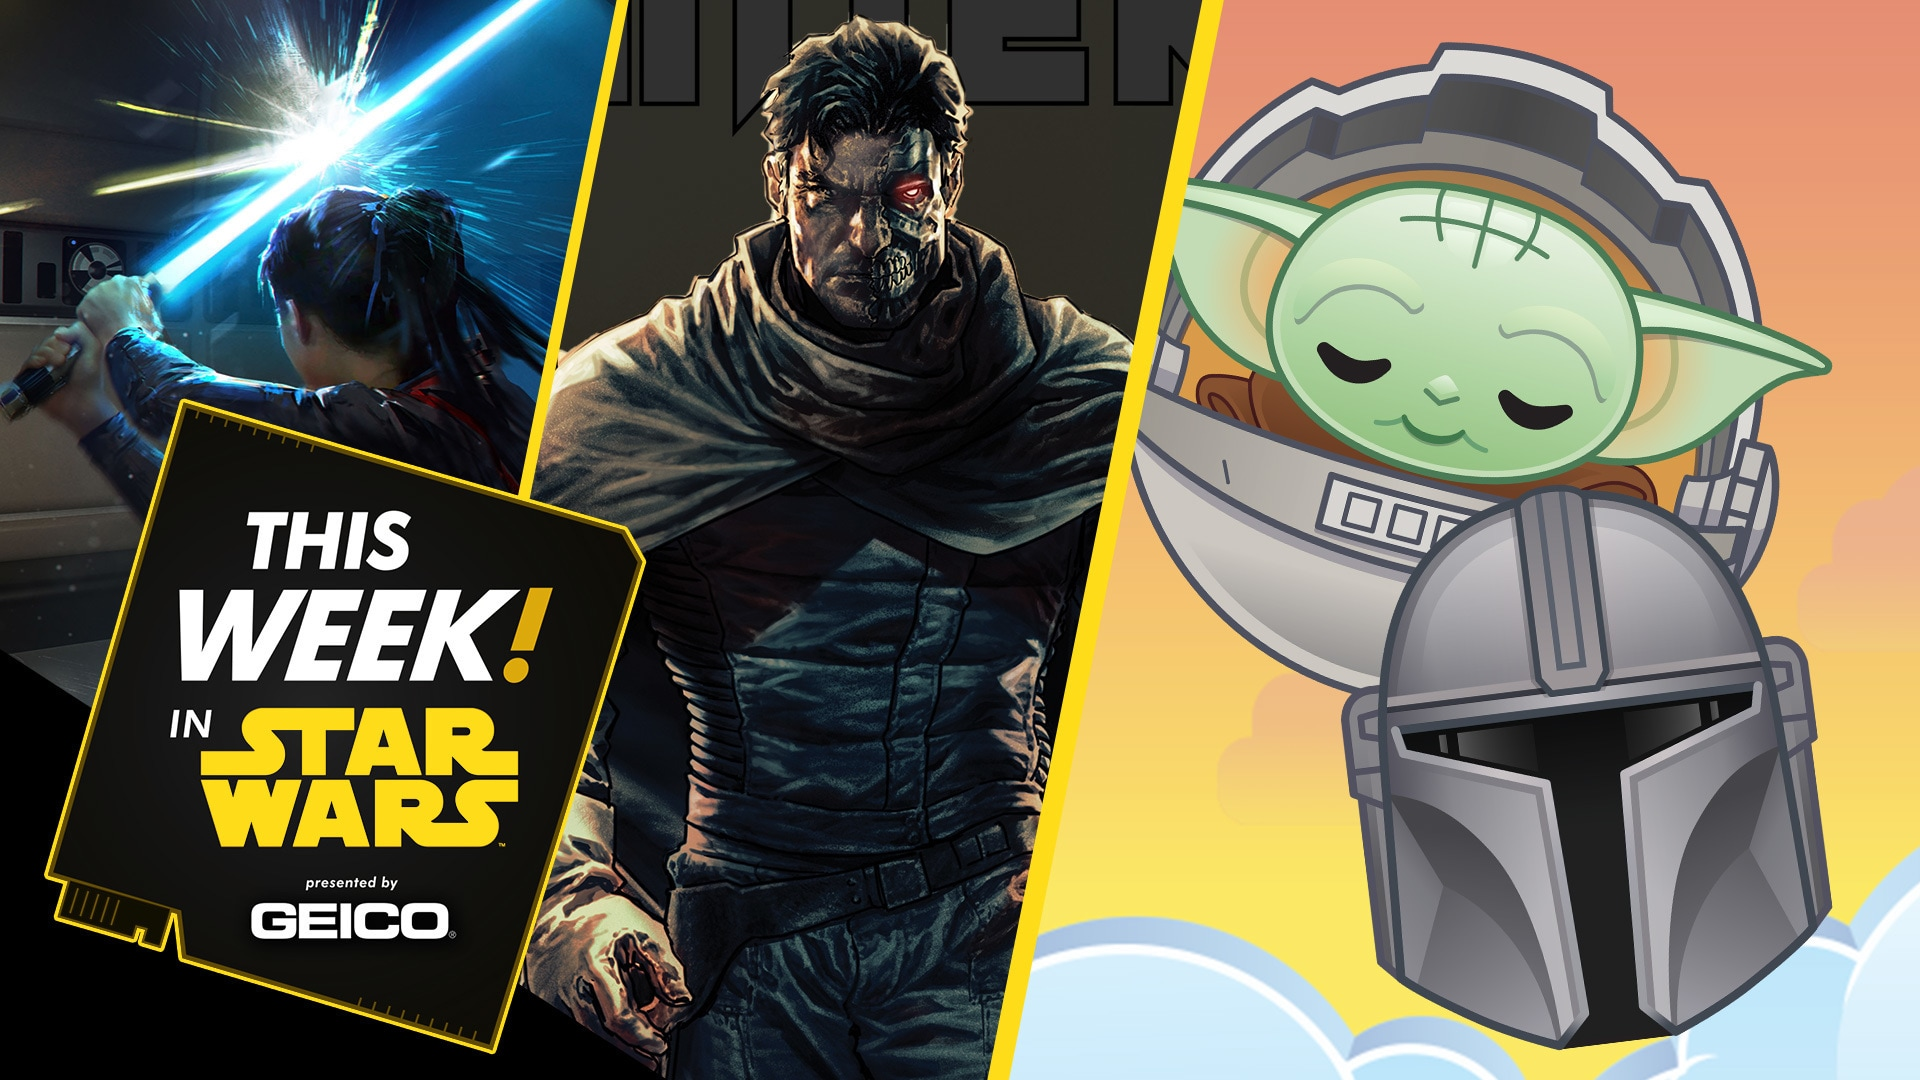 Star Wars: Galactic Starcruiser News, The Mandalorian Comes to Emoji Blitz, and More!